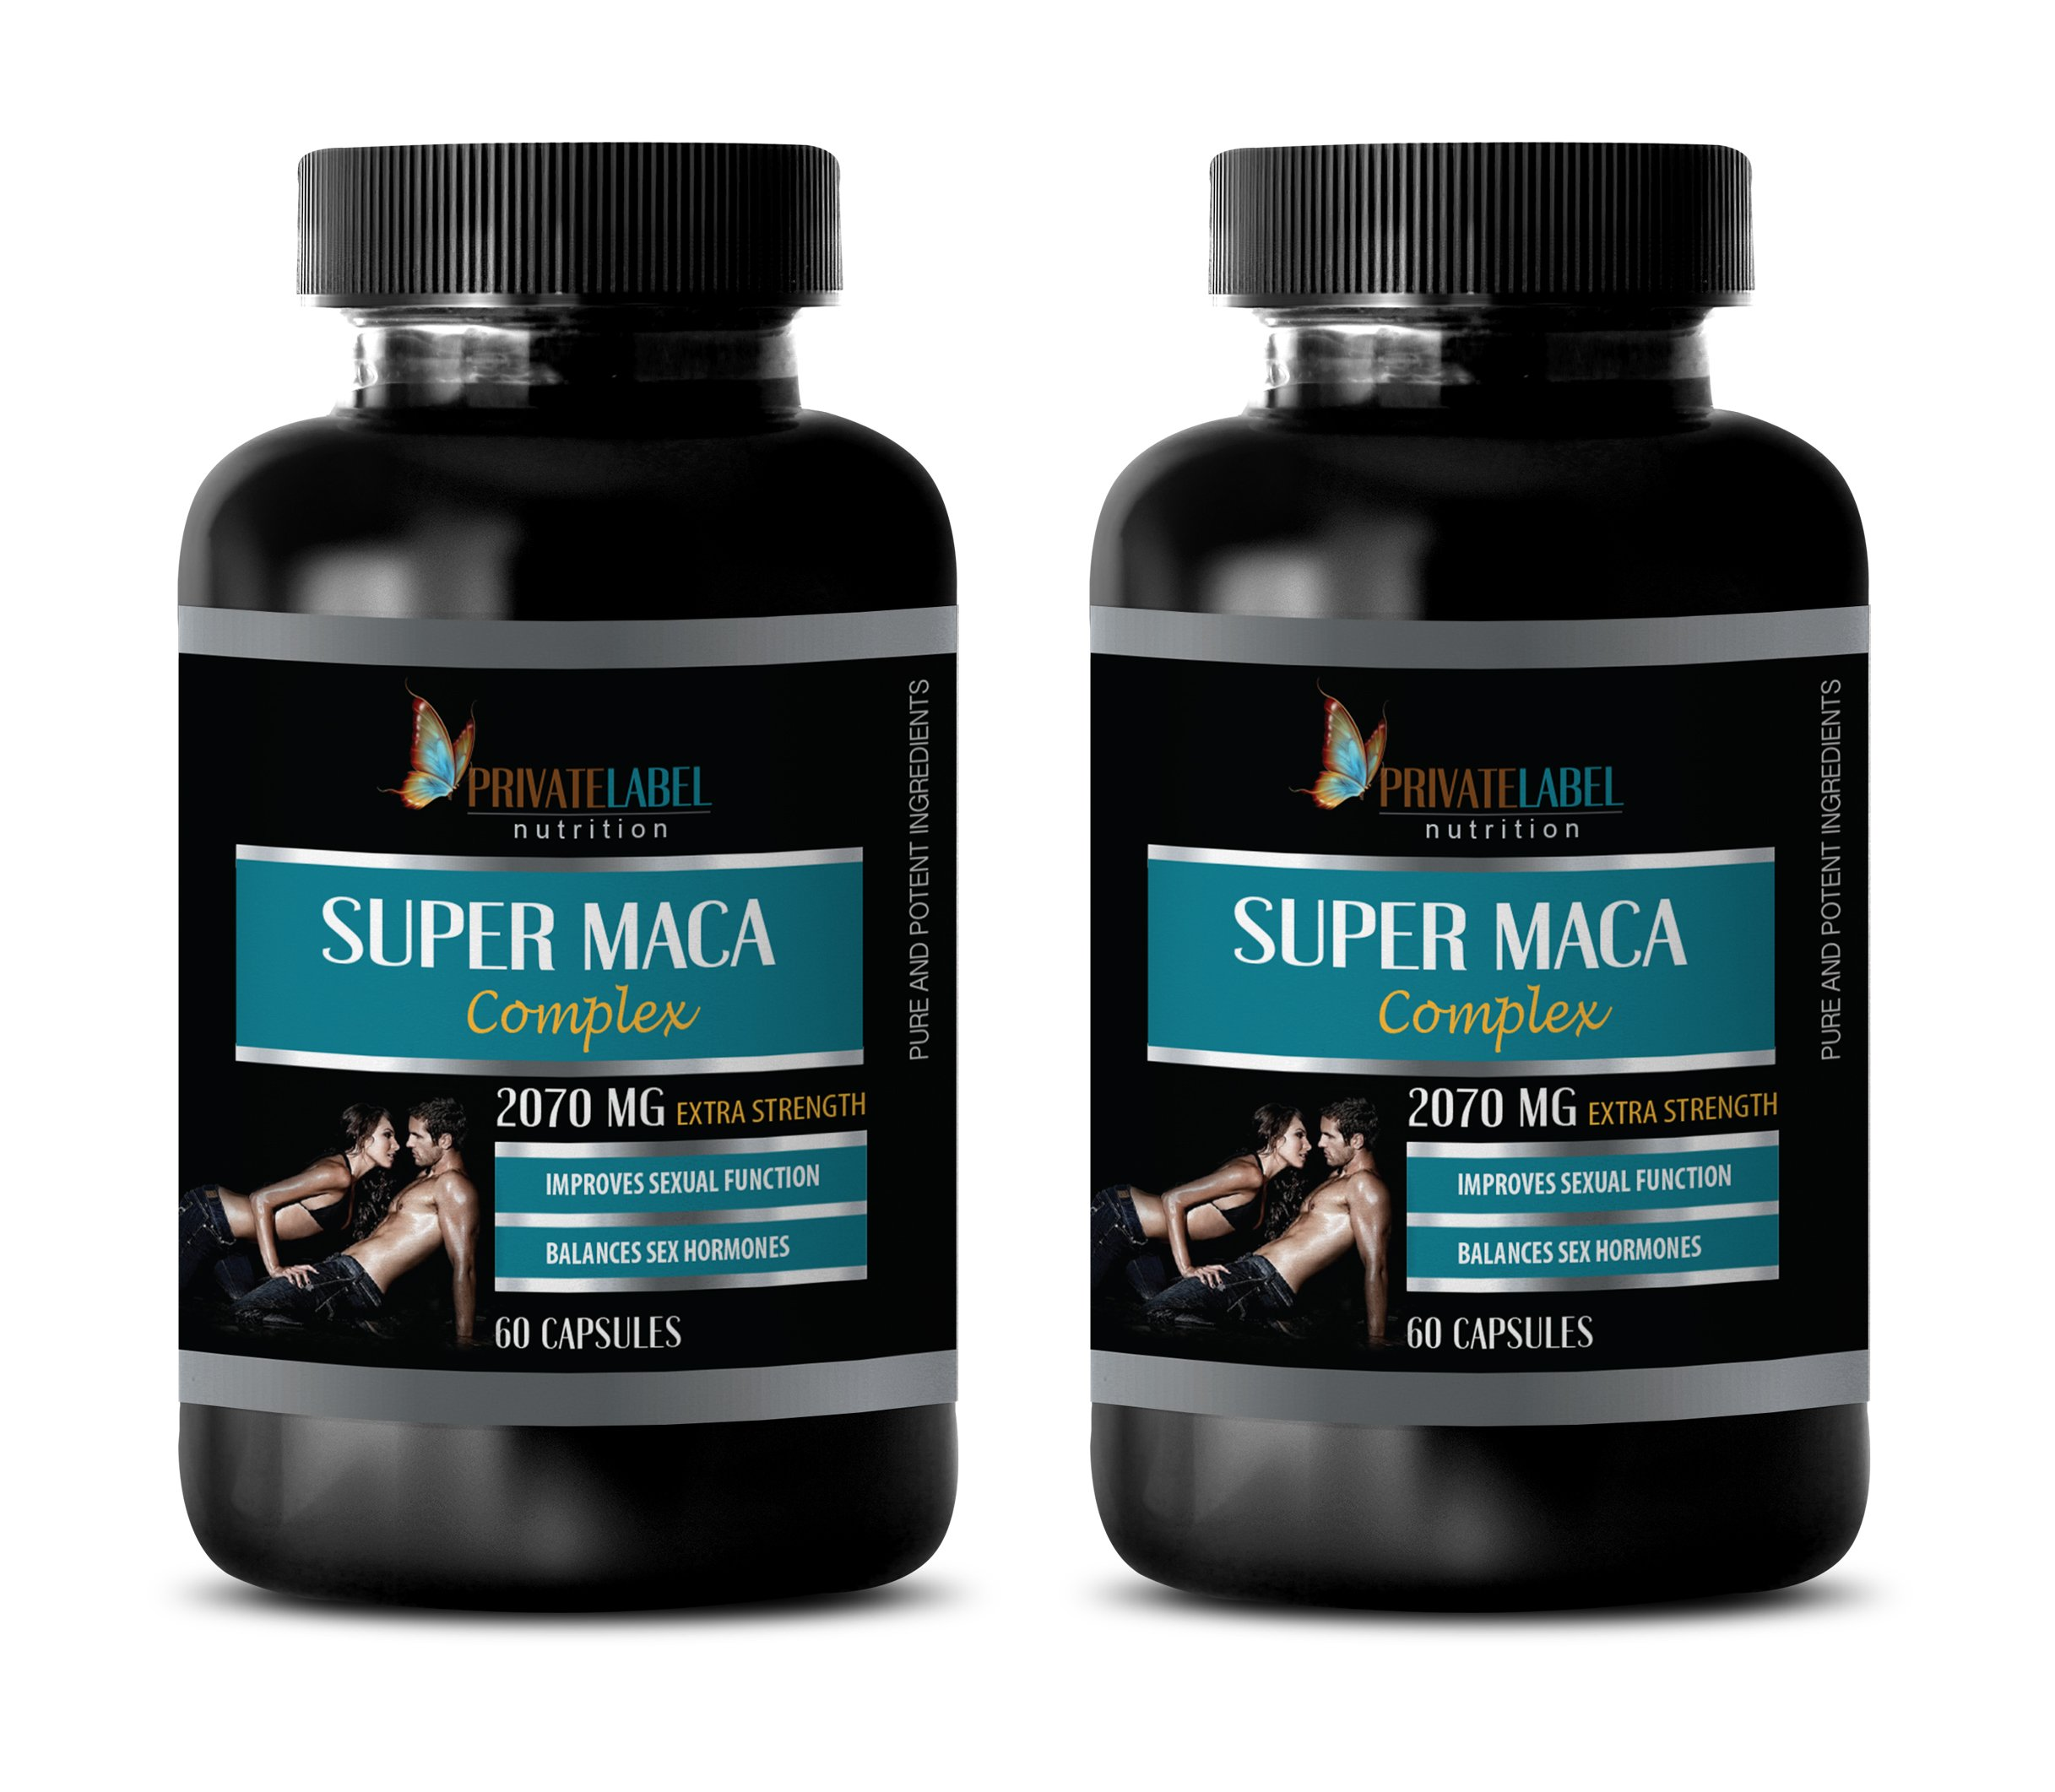 Testosterone Booster Pills for Men - Super MACA Complex - Improves Sexual Function - maca Root Supplement for Women - 2 Bottles 120 Capsules